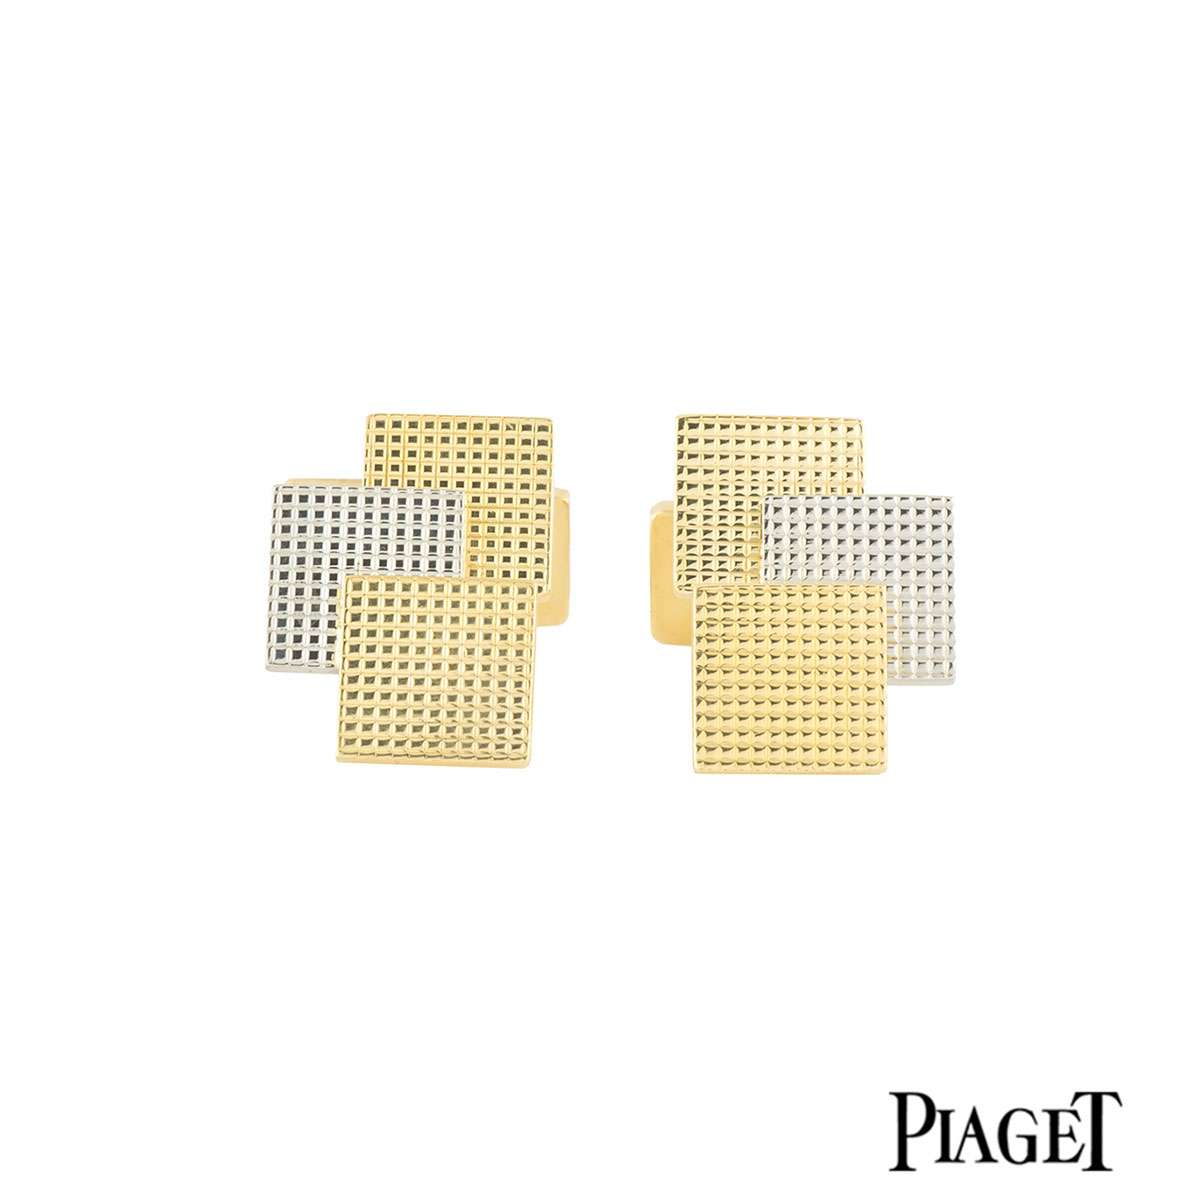 Piaget Square Cufflinks